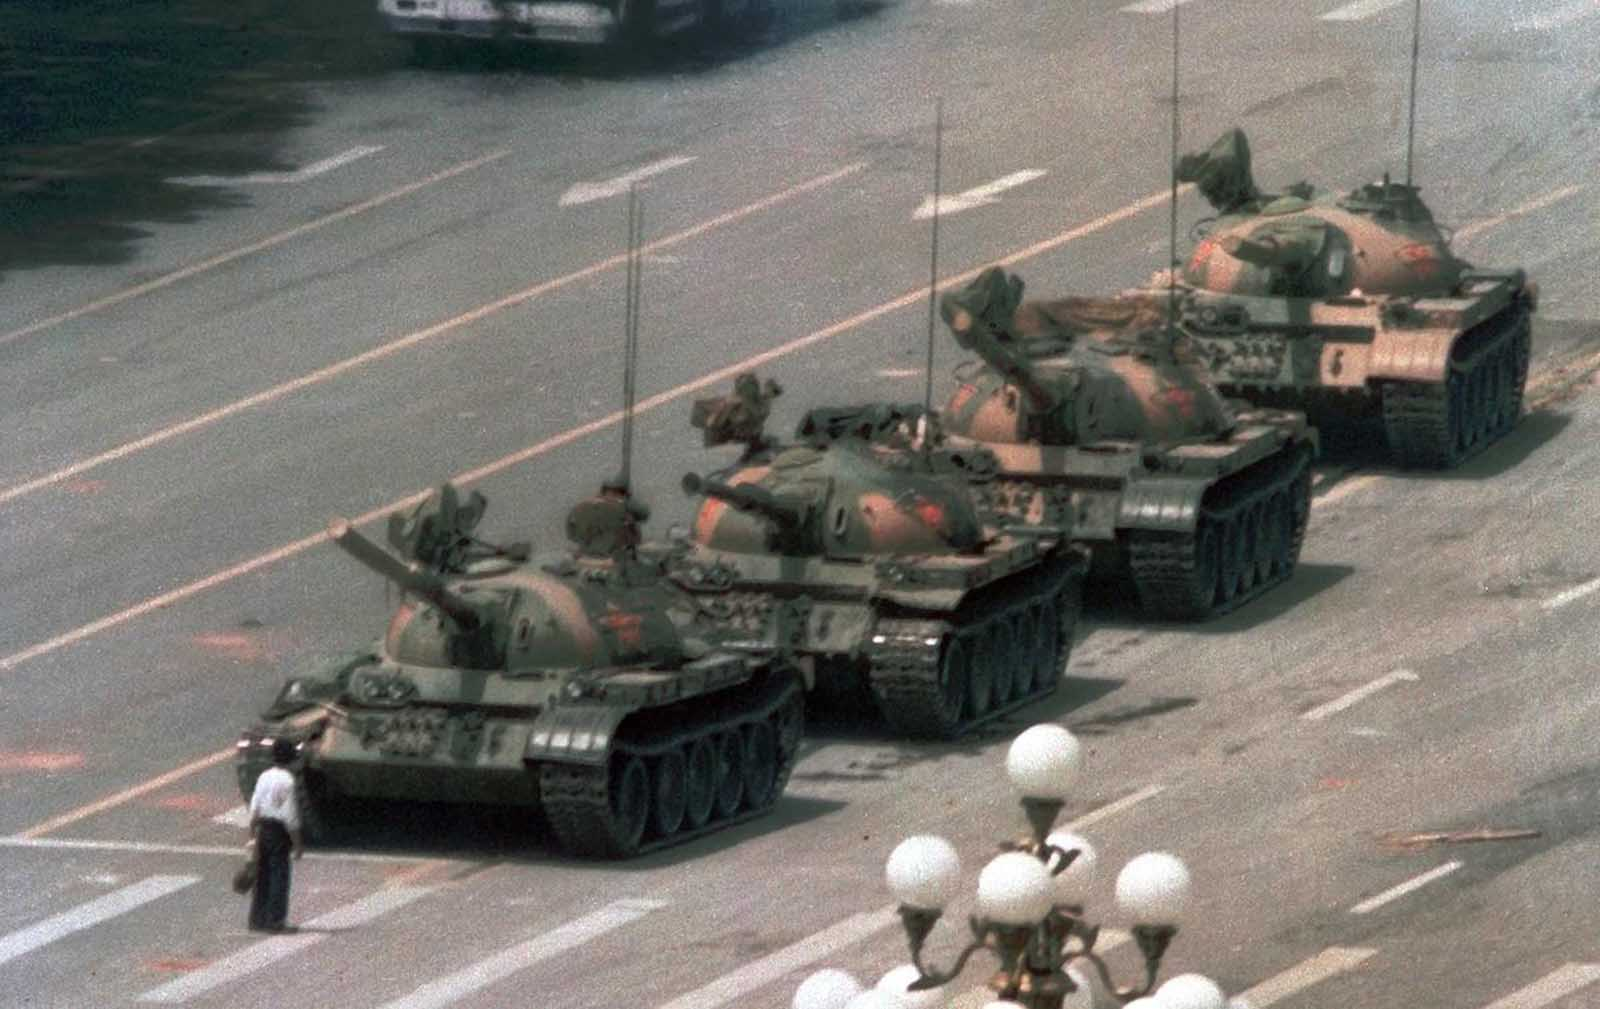 Tiananmen_Square_protests_1989 (1).jpg